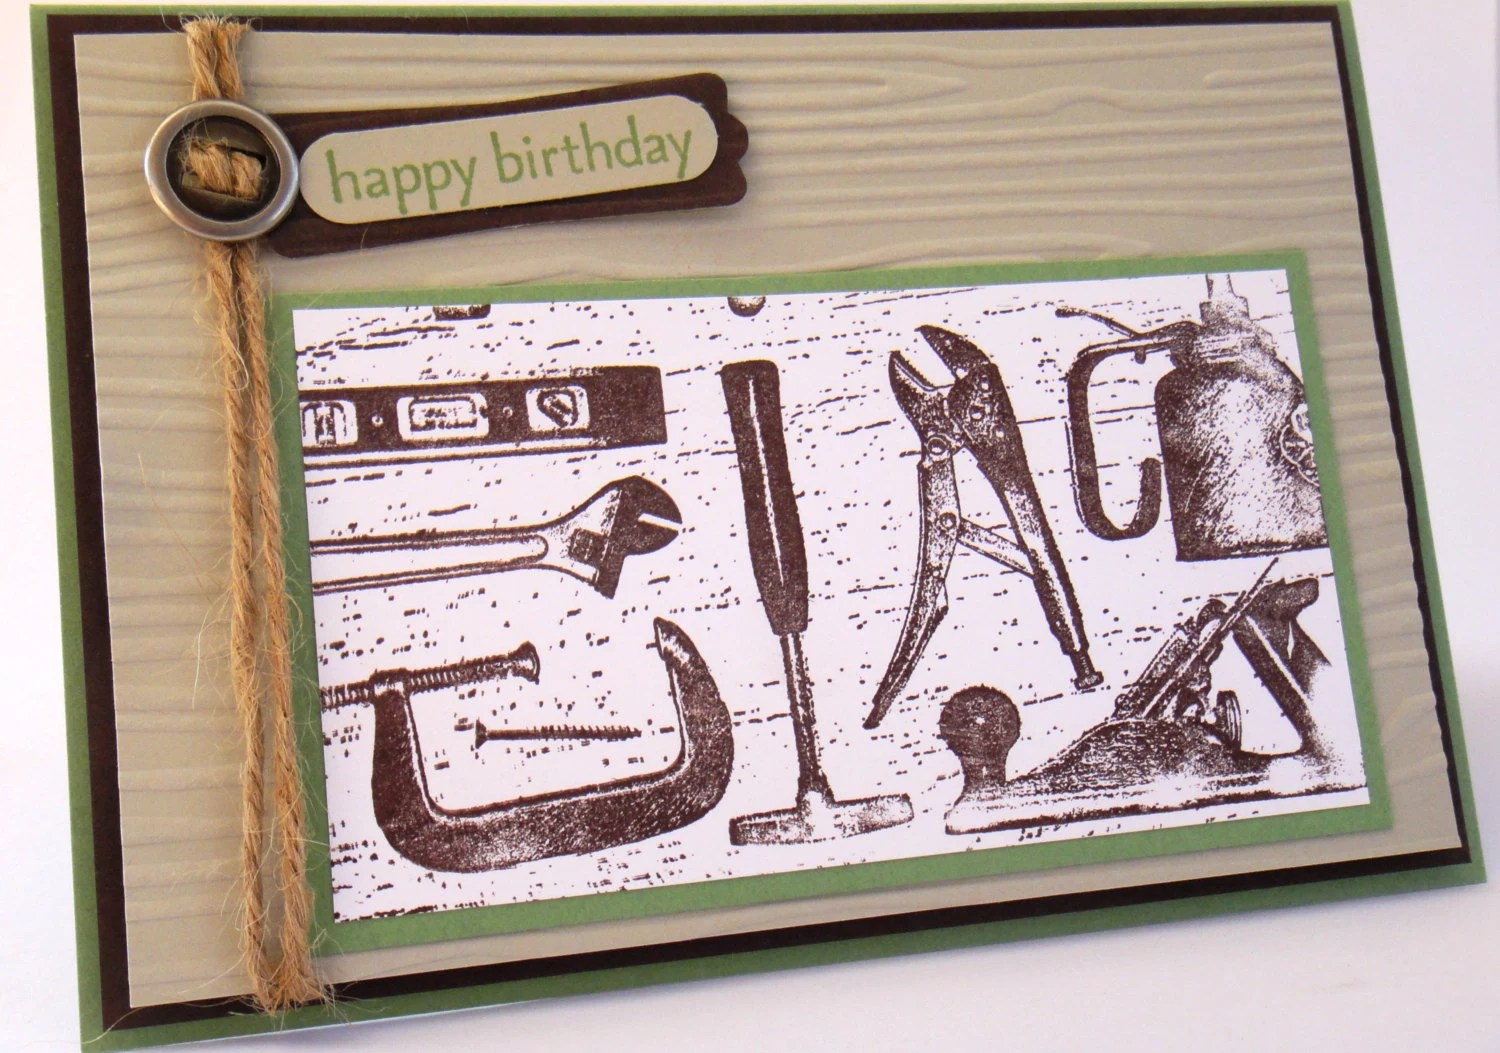 handmade happy birthday card for boyfriend husband male diy handyman carpentry tools and embossed wood grain